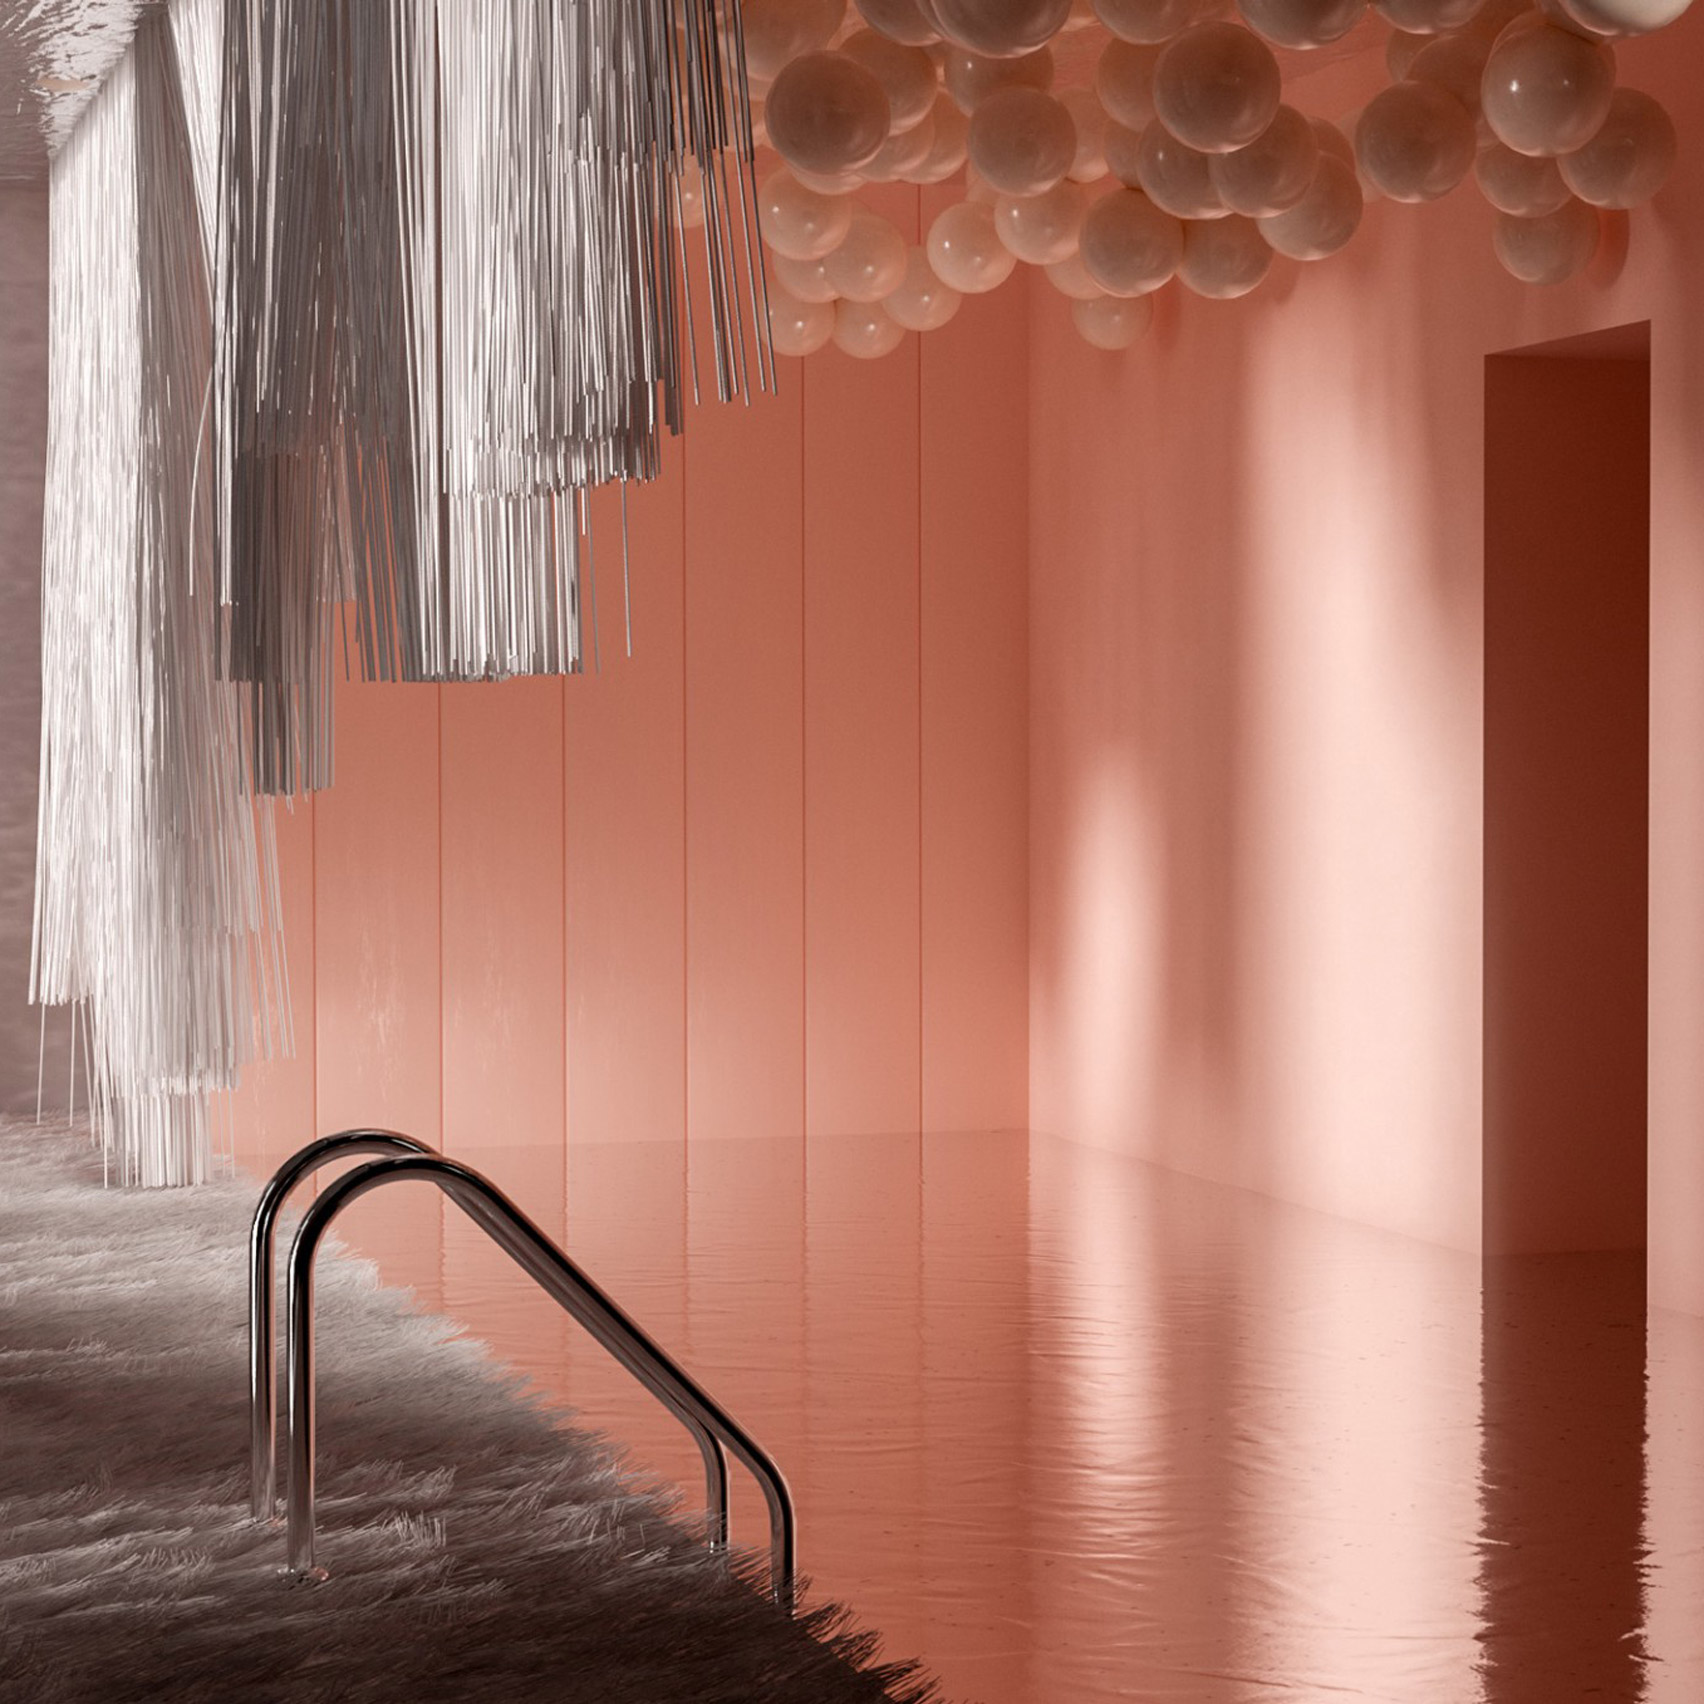 Andres Reisinger features in the Dreamscapes & Artificial Architecture book published by Gestalten